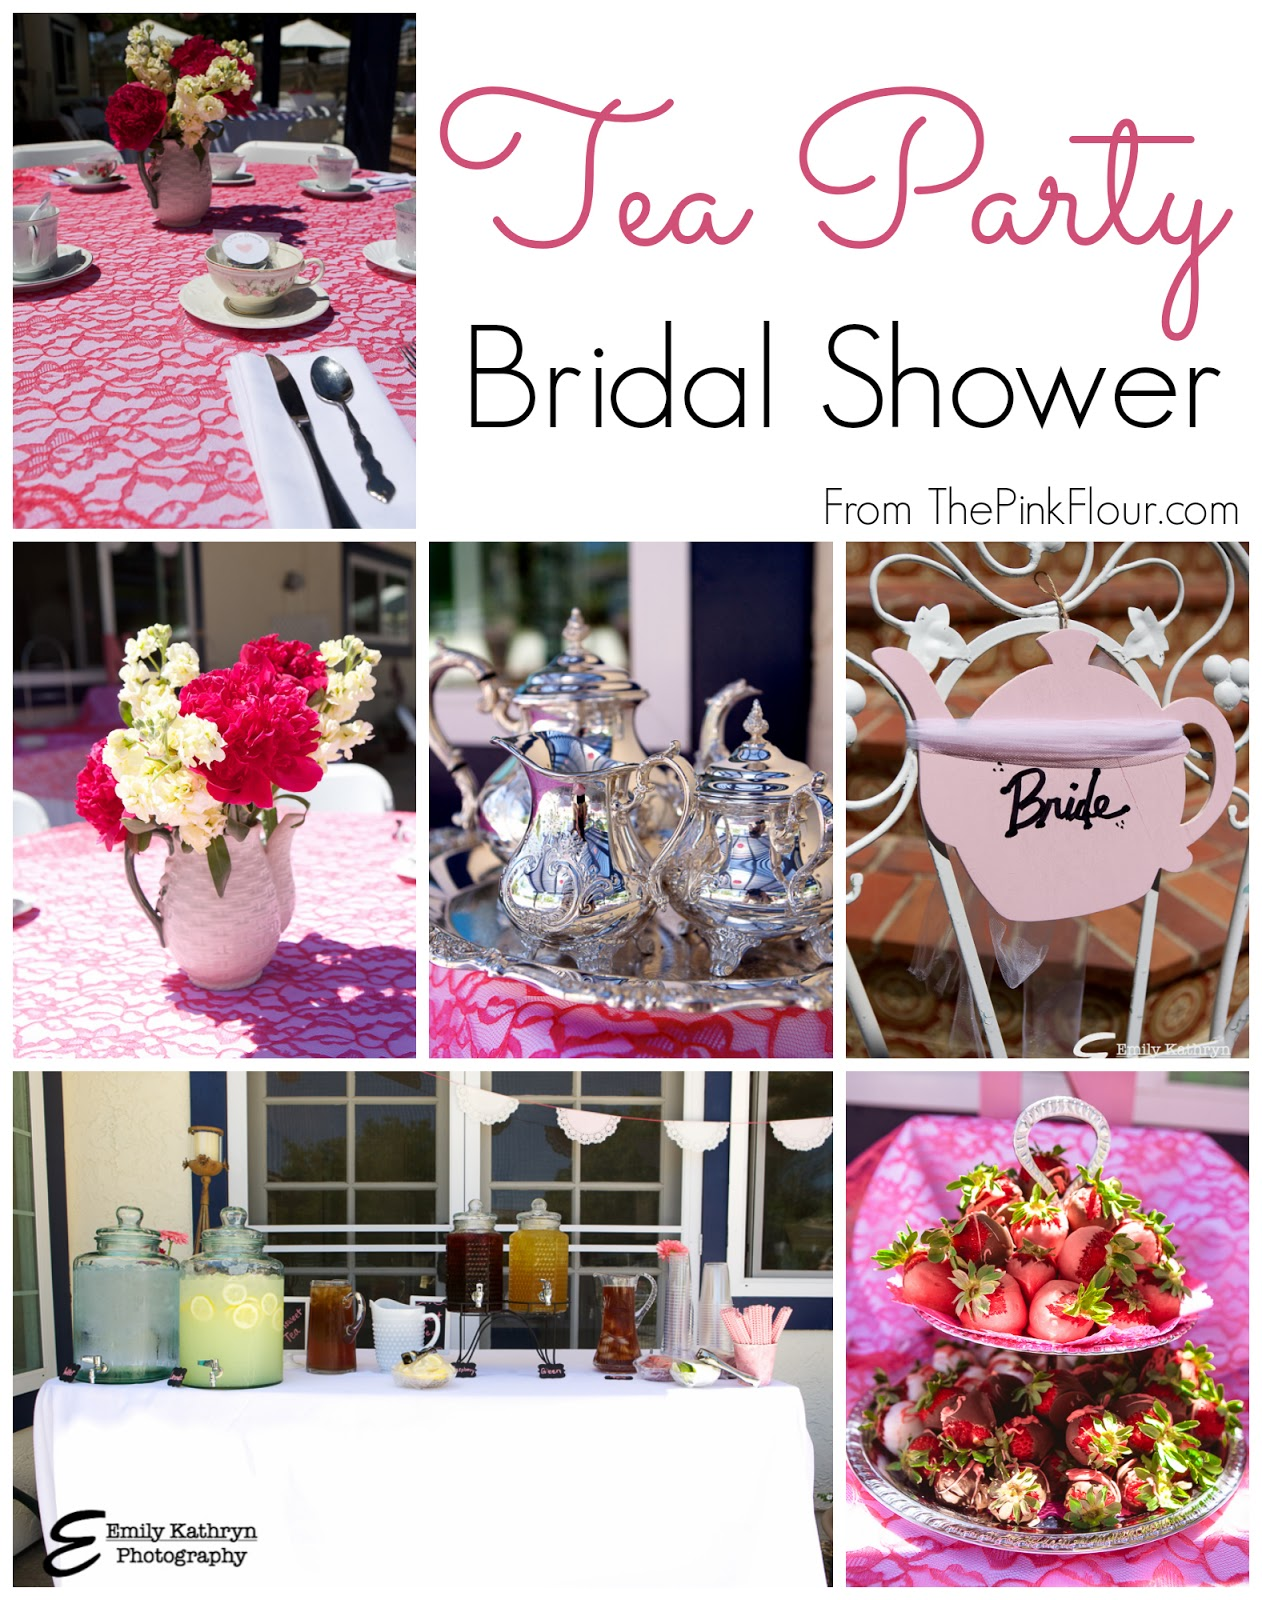 Tea Party Bridal Shower - a modern spin on a traditional theme from www.thepinkflour.com